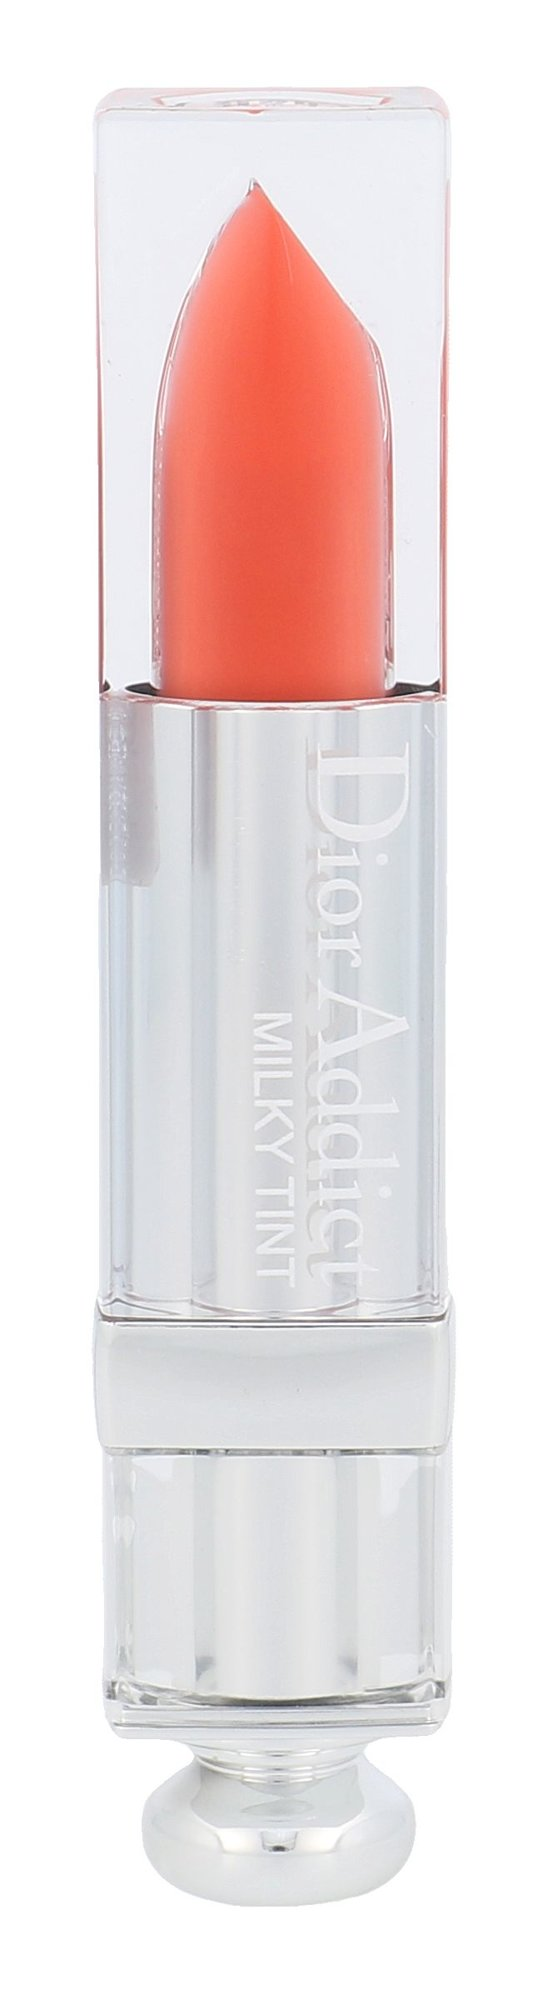 Christian Dior Addict Cosmetic 5,5ml 356 Milky Peach